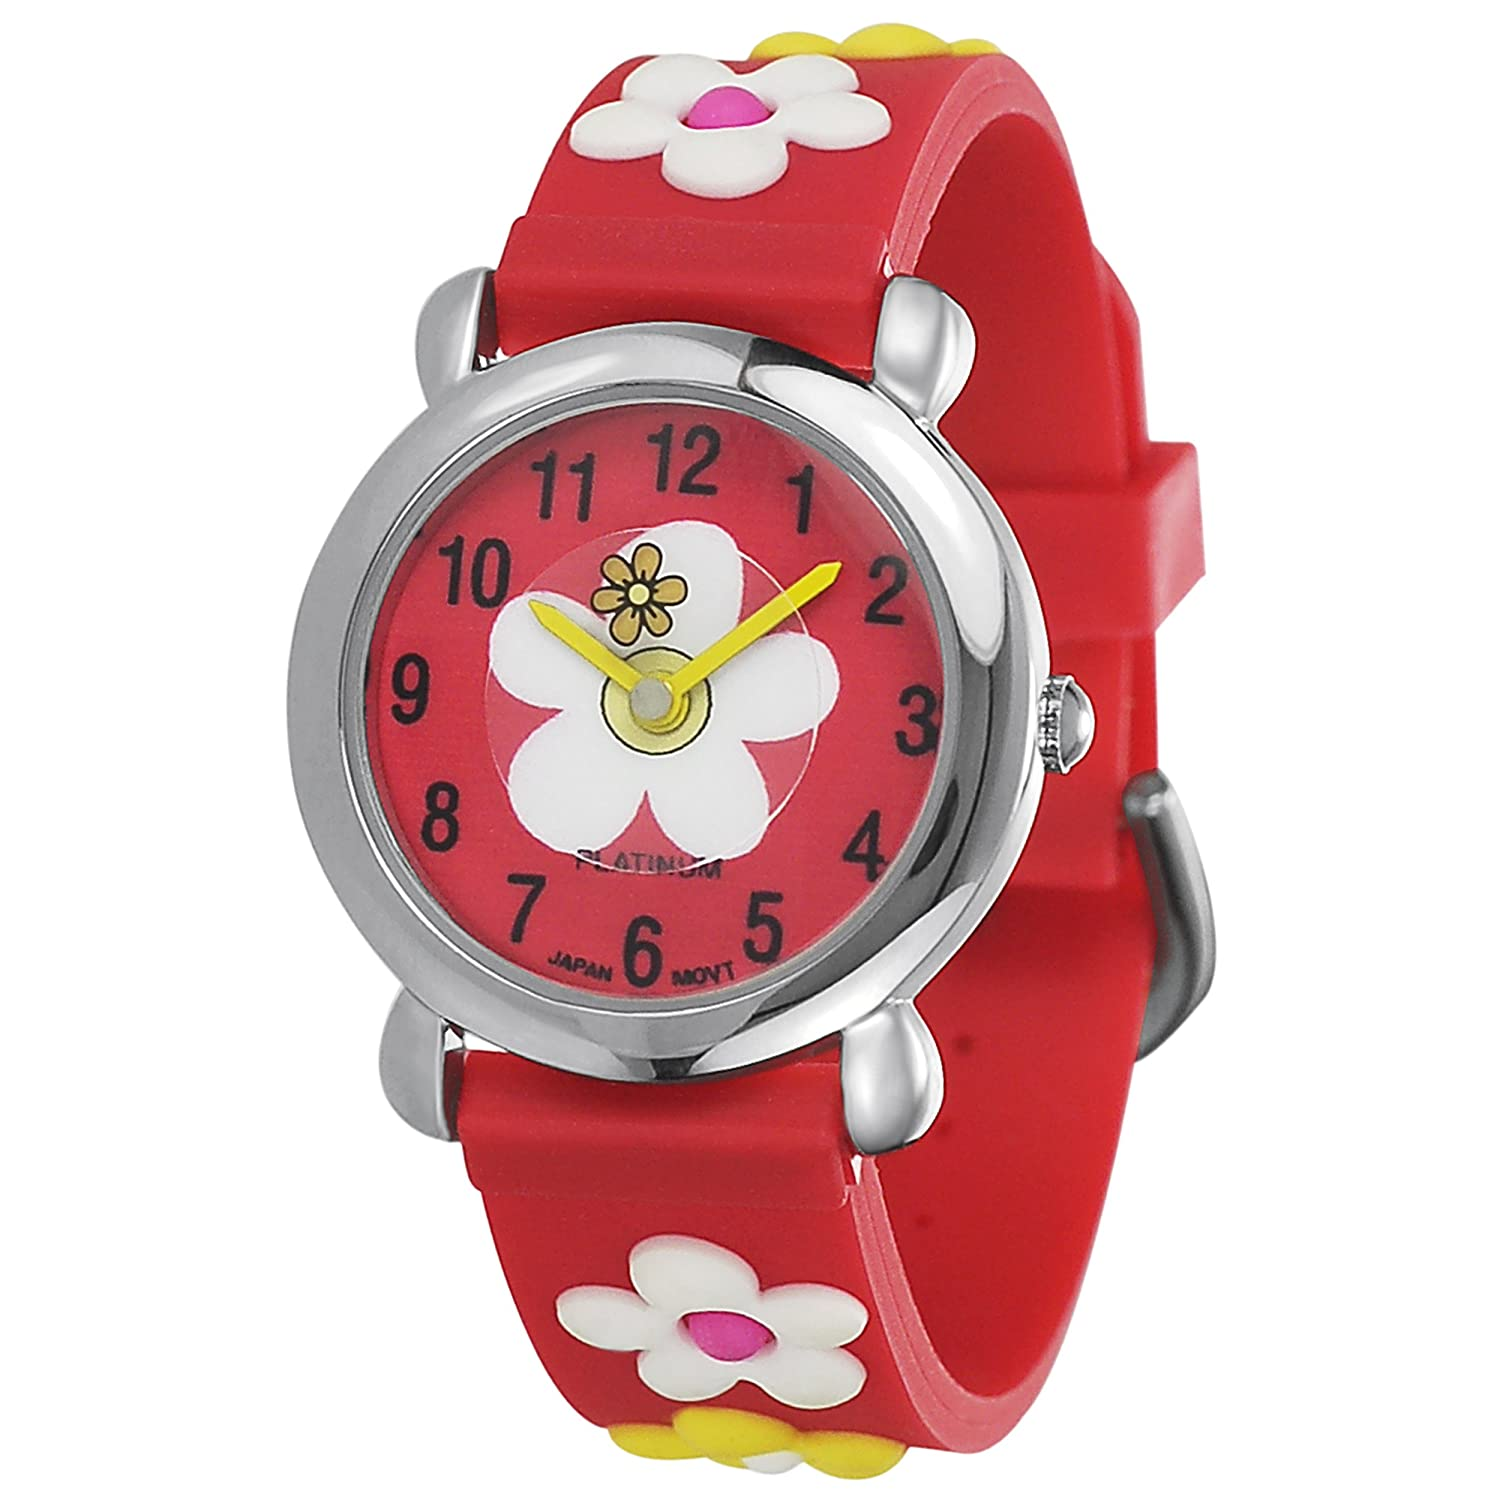 GP by Brinley Co Red Girls Silicone Watch